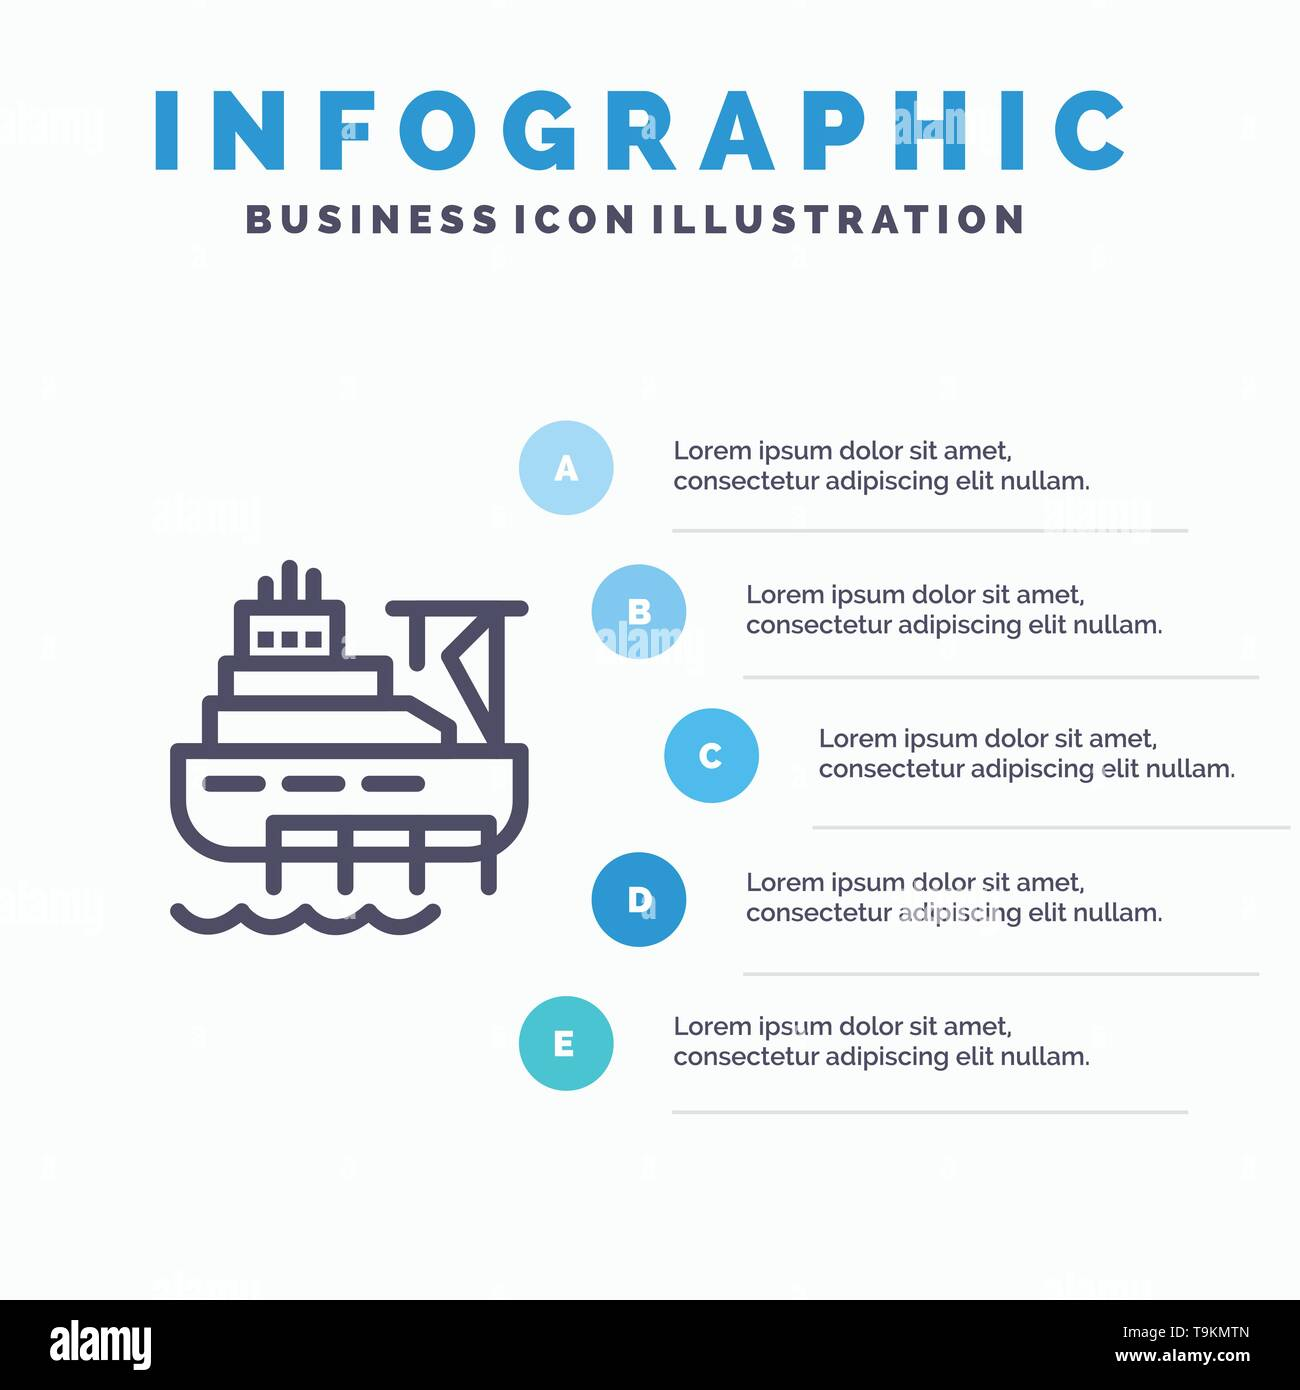 Ship, Boat, Cargo, Construction Line icon with 5 steps presentation infographics Background - Stock Image